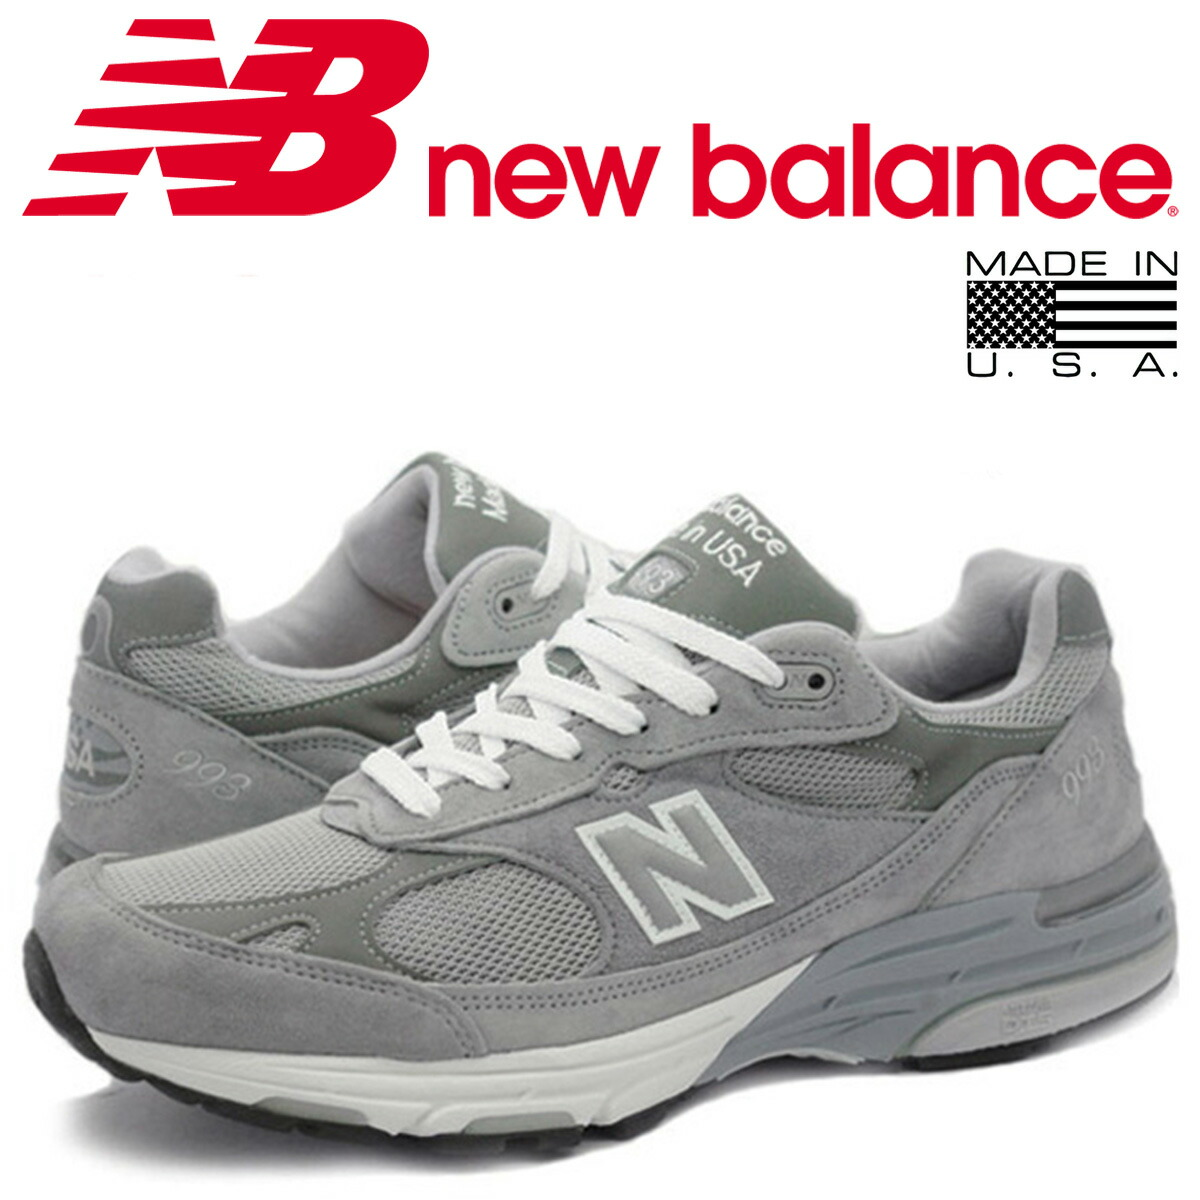 separation shoes b44d3 d08a0 new balance 993 men's New Balance sneakers MR993GL D Wise MADE IN USA gray